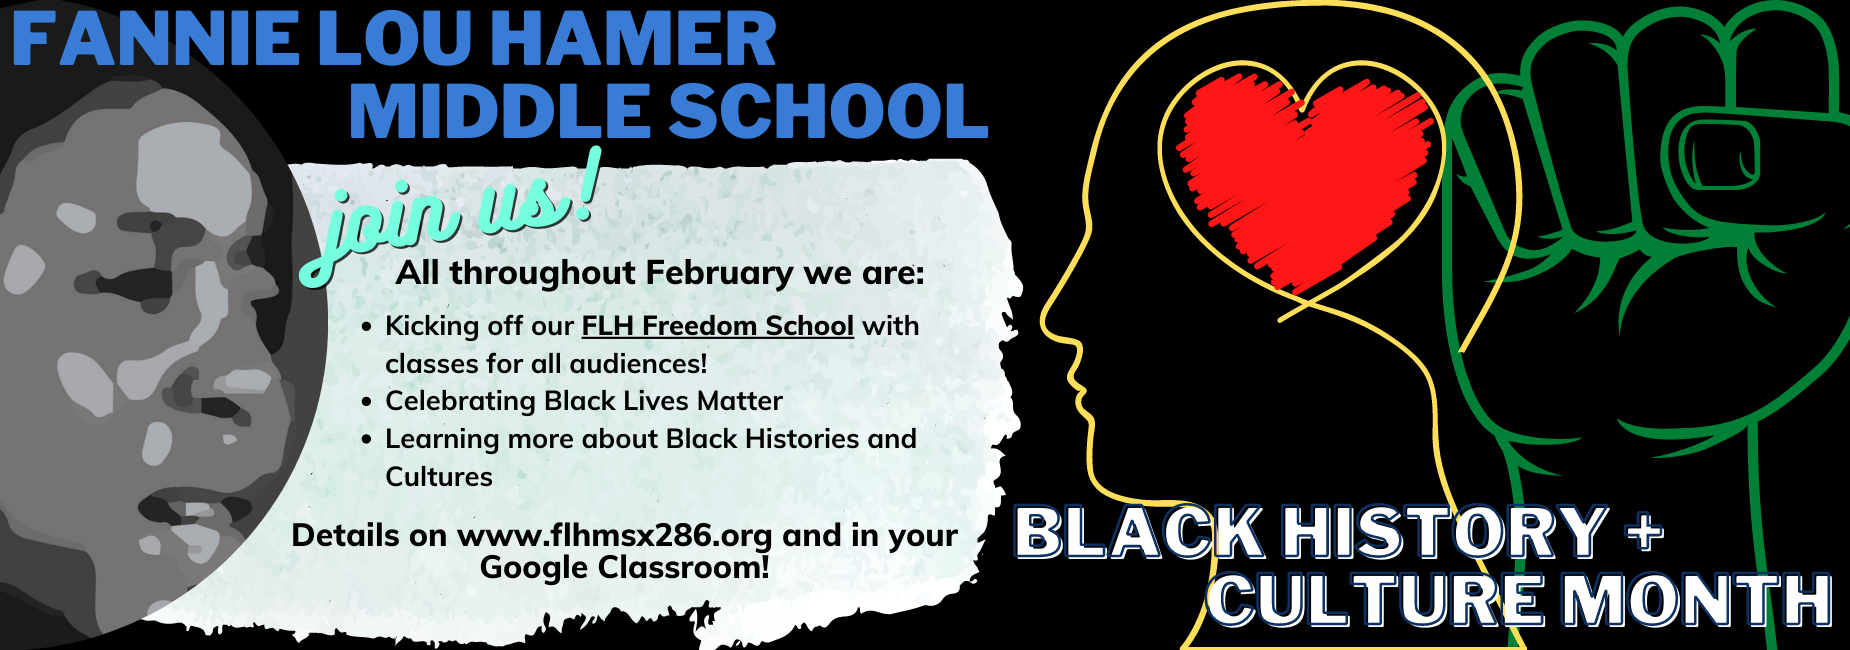 Join us for Black History and Culture Month. Details in your Google Classroom posted throughout Feb.